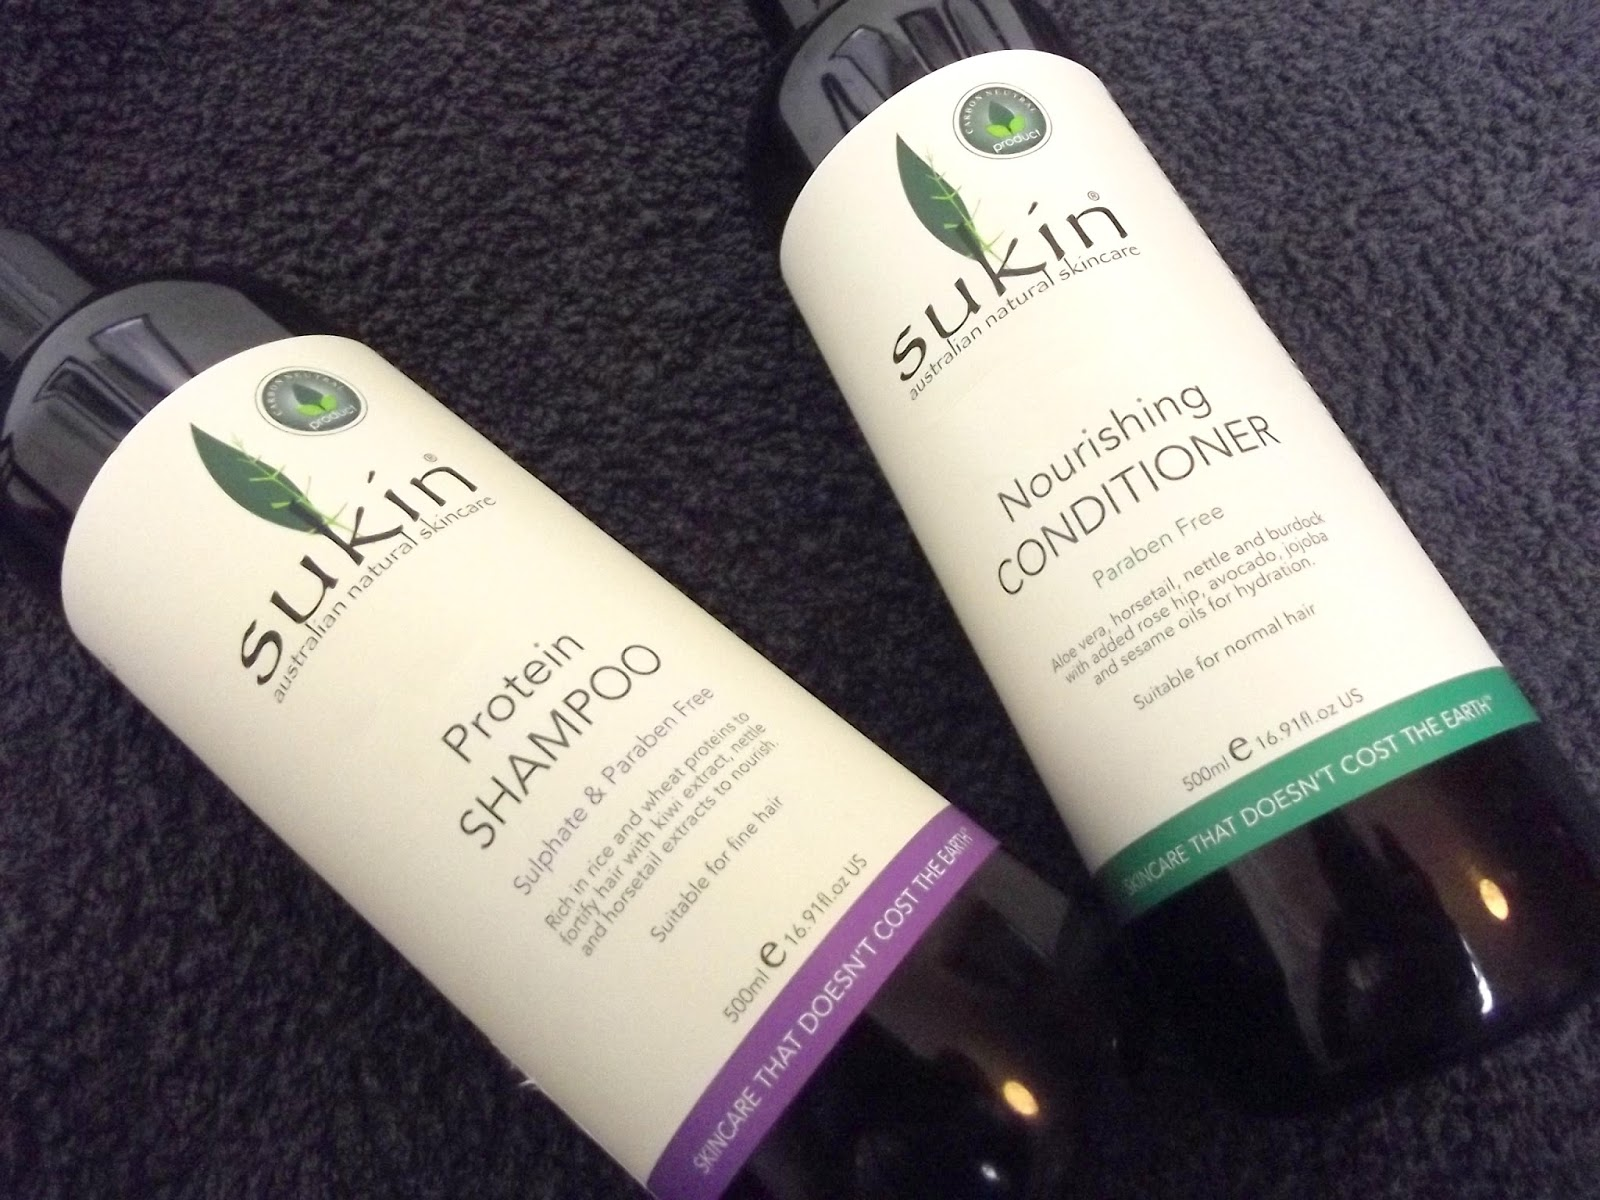 Sukin Protein Shampoo & Nourishing Conditioner